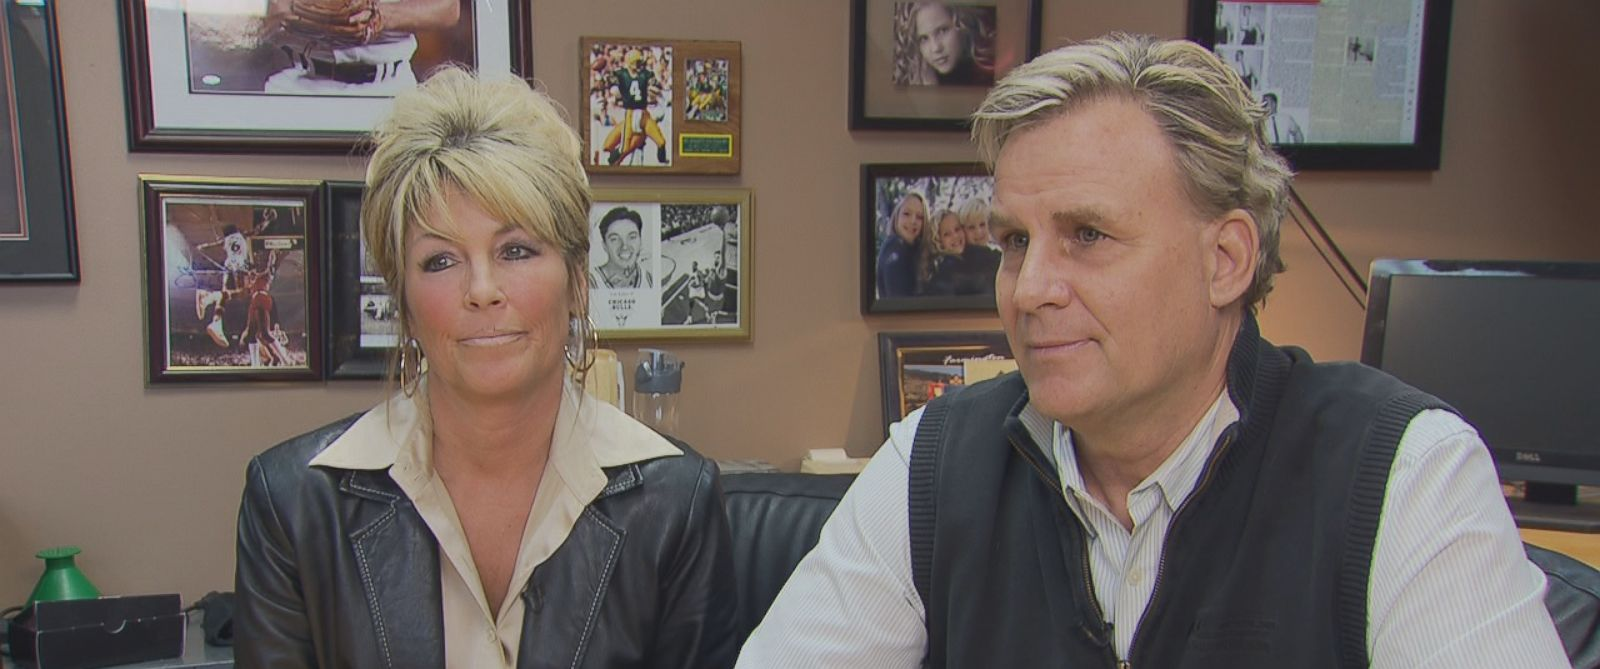 PHOTO: Sam and Jodie Russell are the masterminds behind the dating website, WhereWhitePeopleMeet.com.